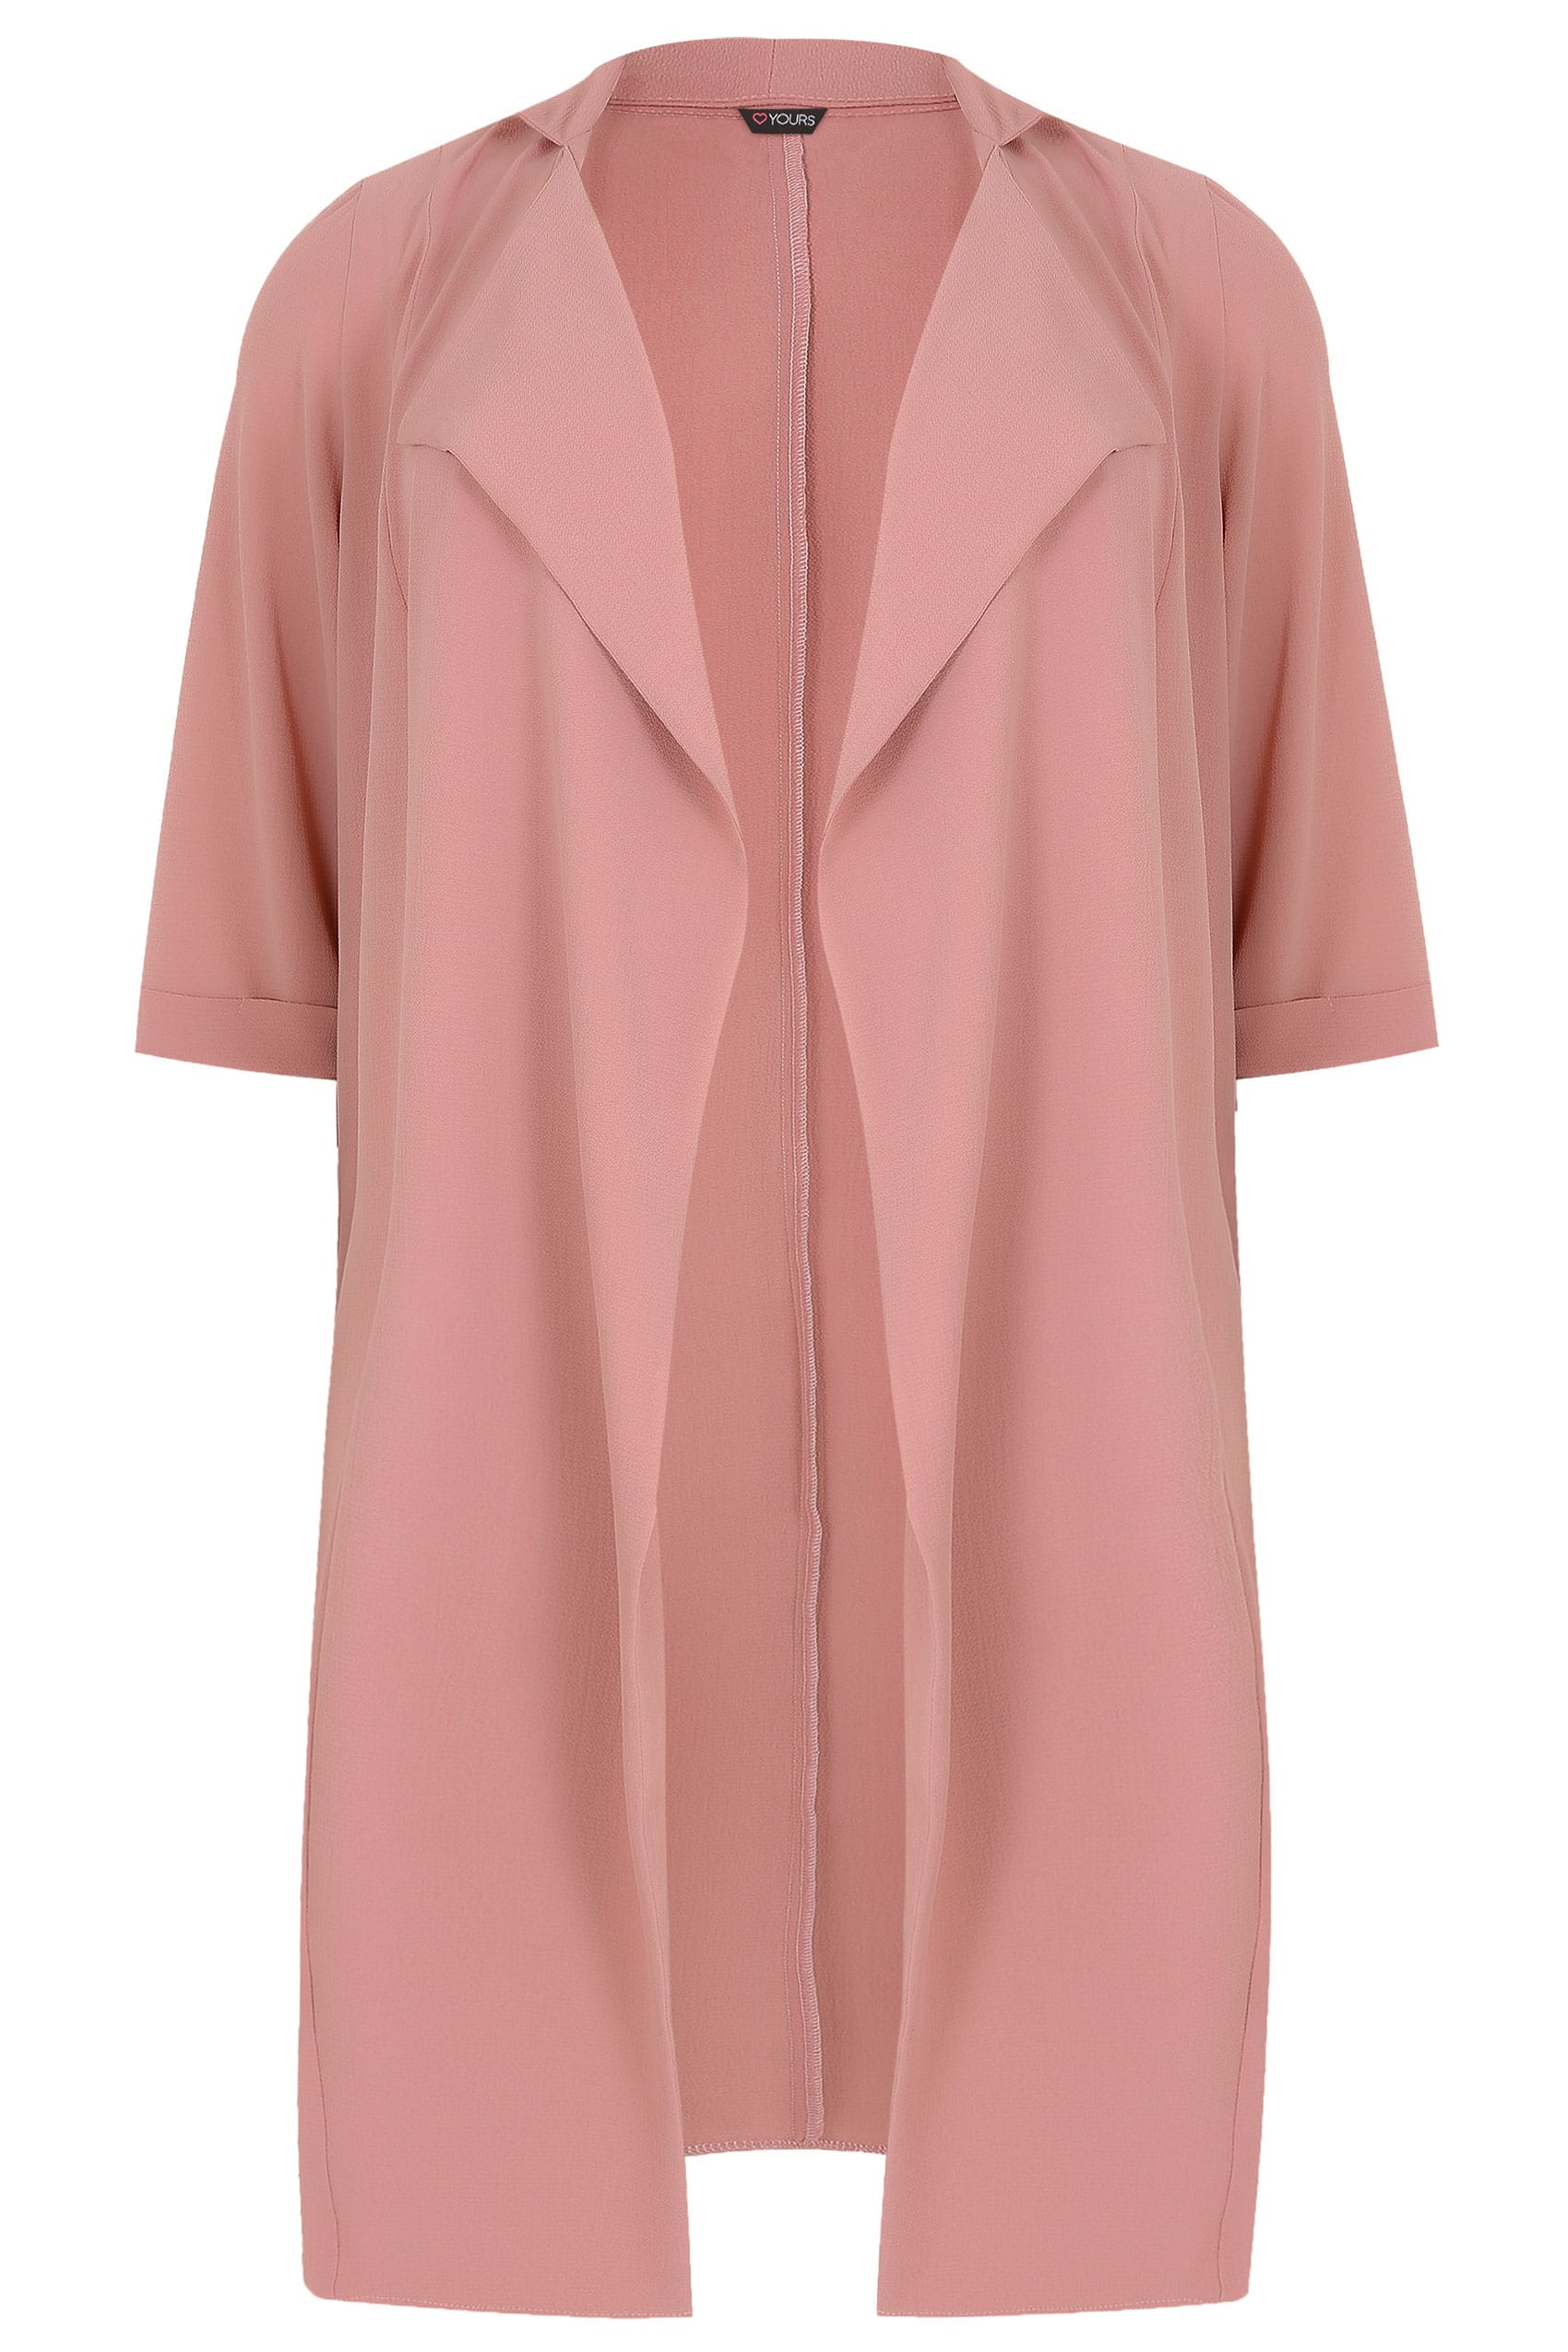 b85da0b968ad4 Dusky Pink Lightweight Duster Jacket With Waterfall Front